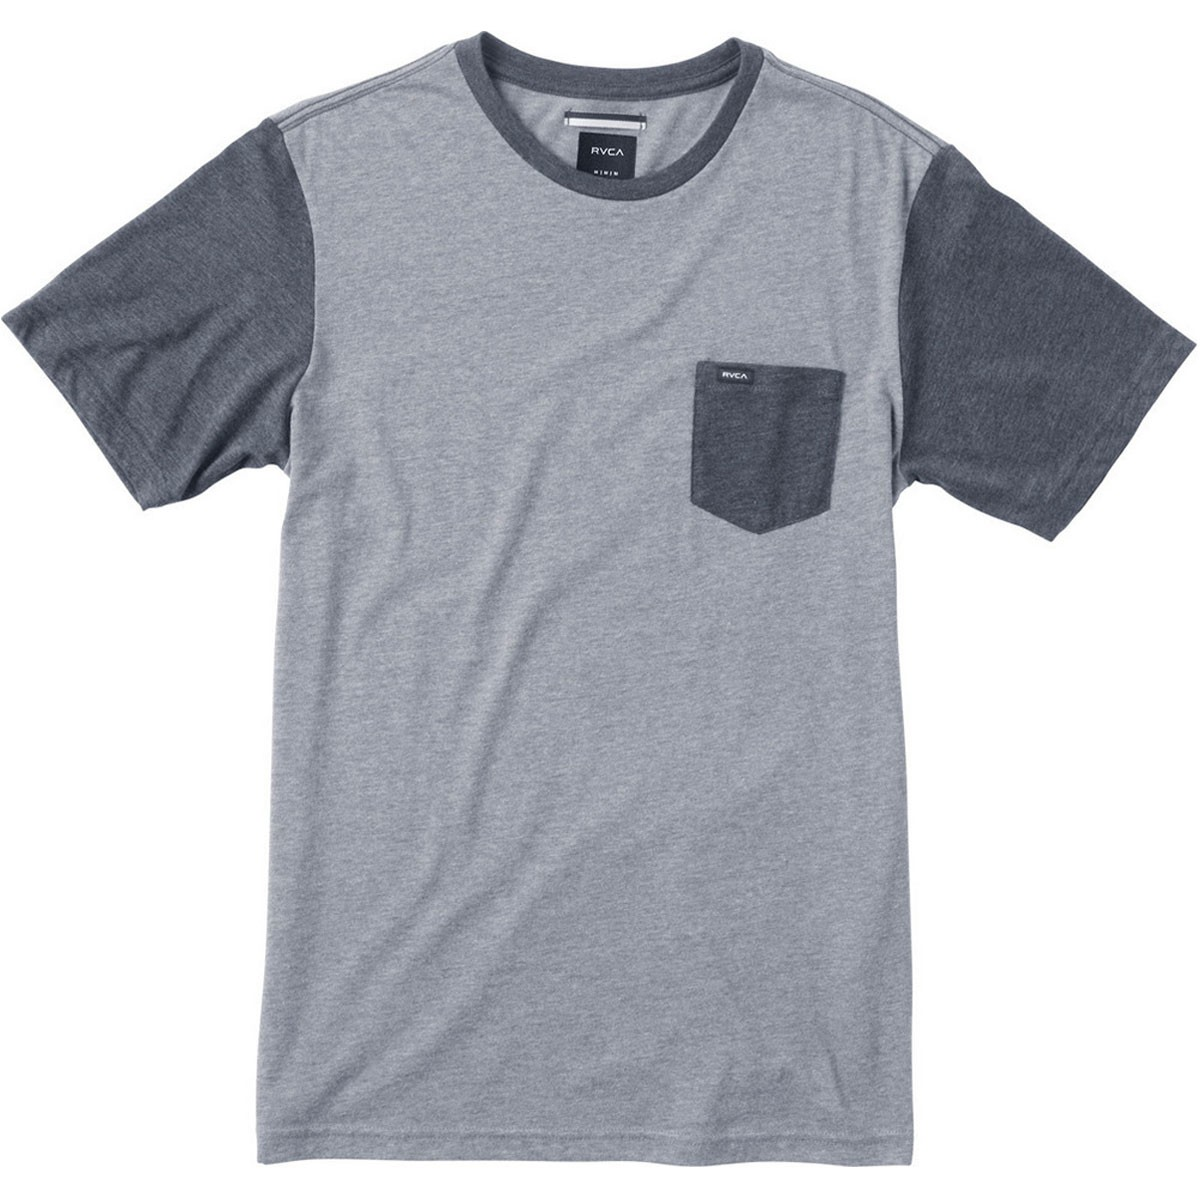 RVCA Change Up T-Shirt - Grey Noise